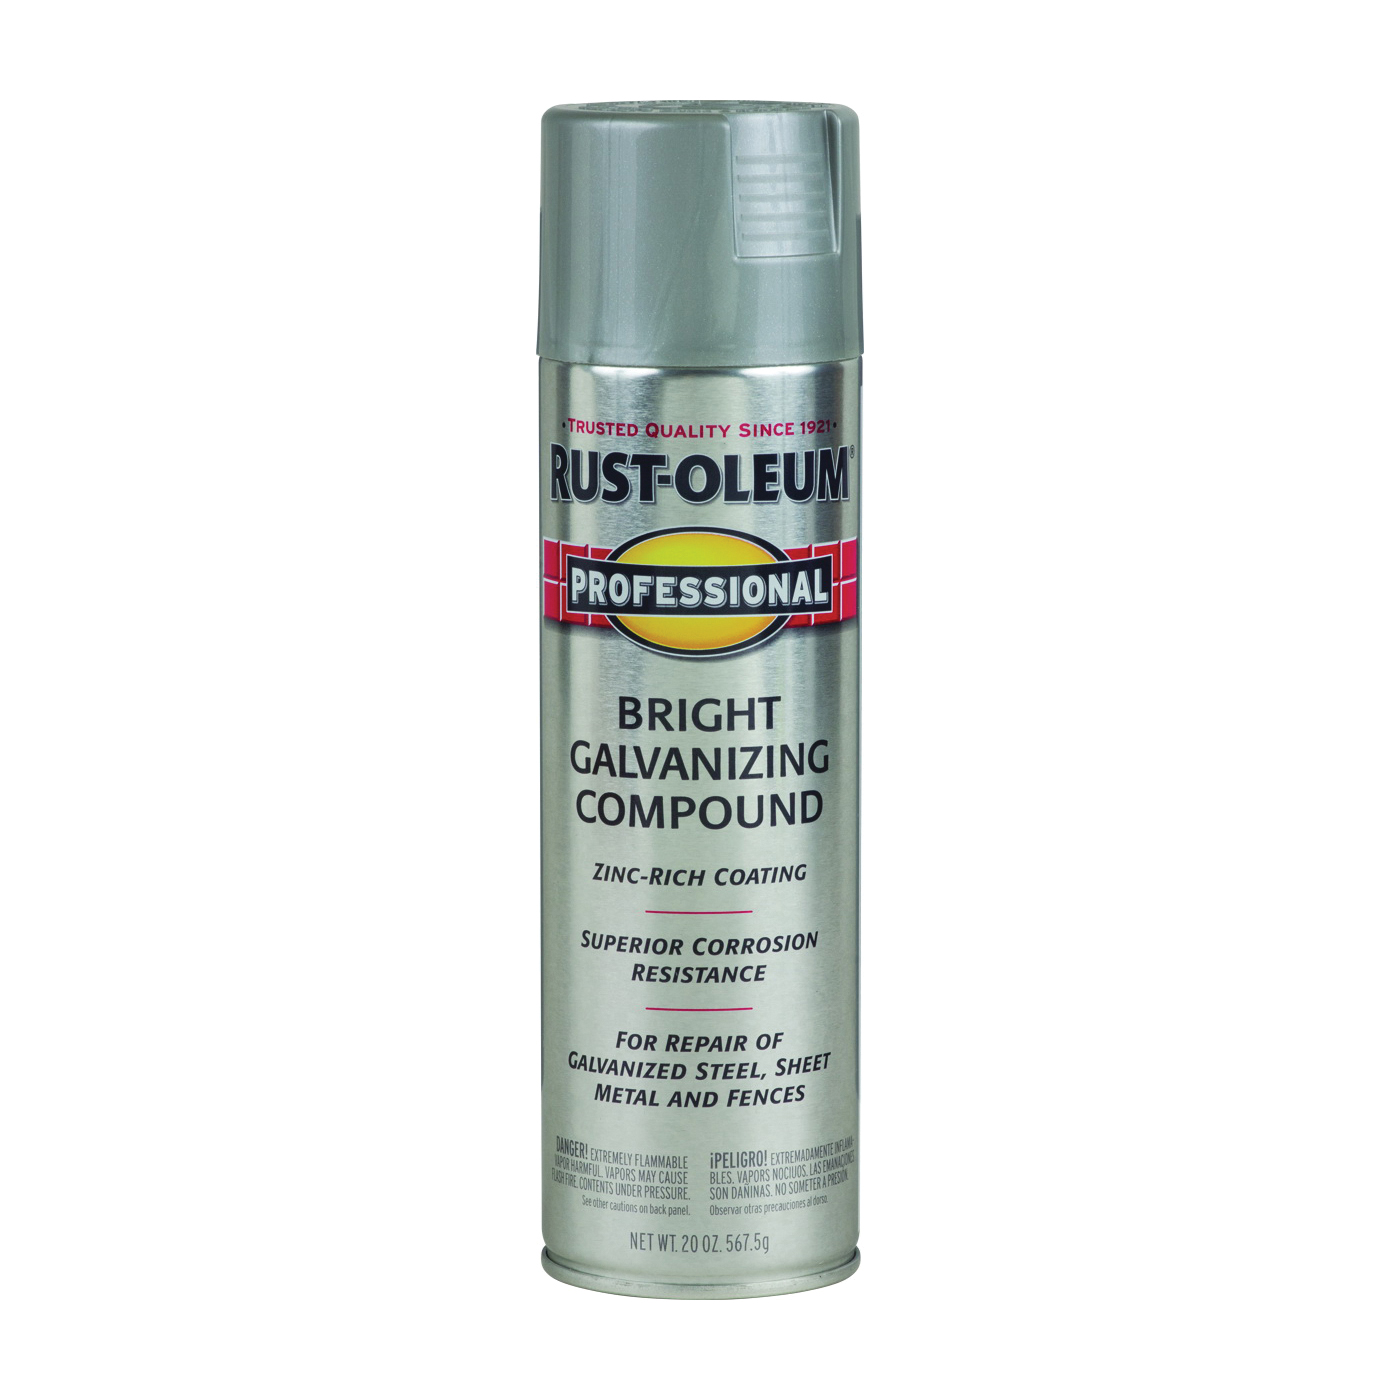 Picture of RUST-OLEUM PROFESSIONAL 7584838 Galvanizing Compound Spray Paint, Bright Gray, 20 oz